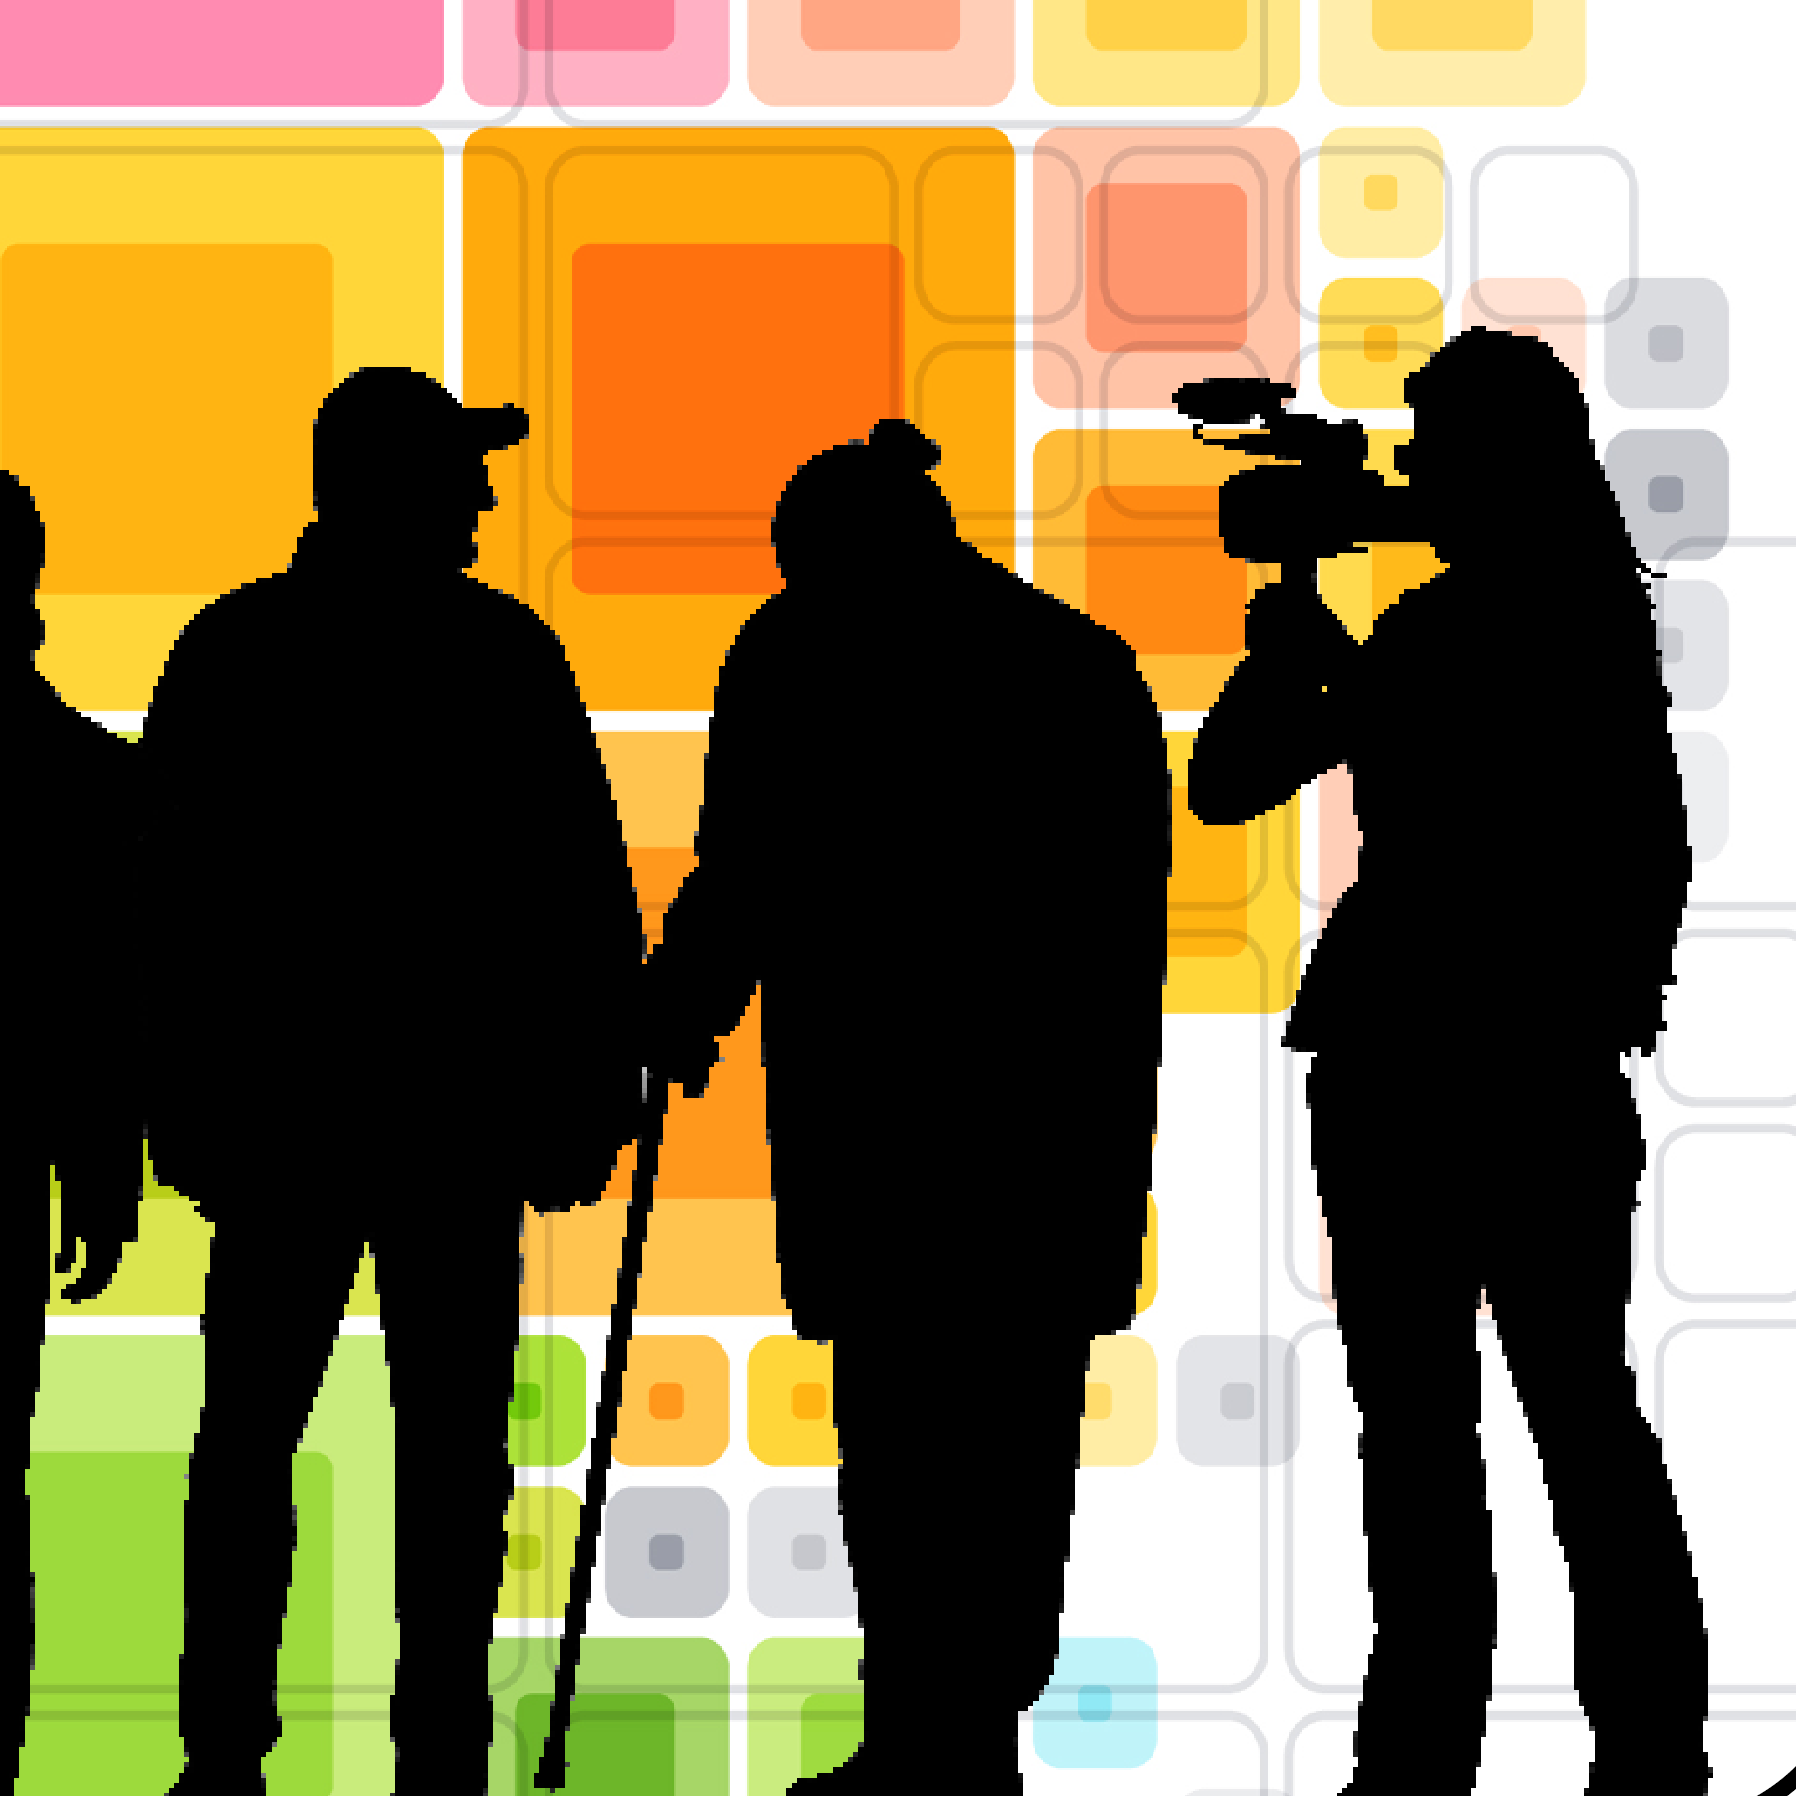 Silhouette of a filmmaker and subjects against a rainbow colored background